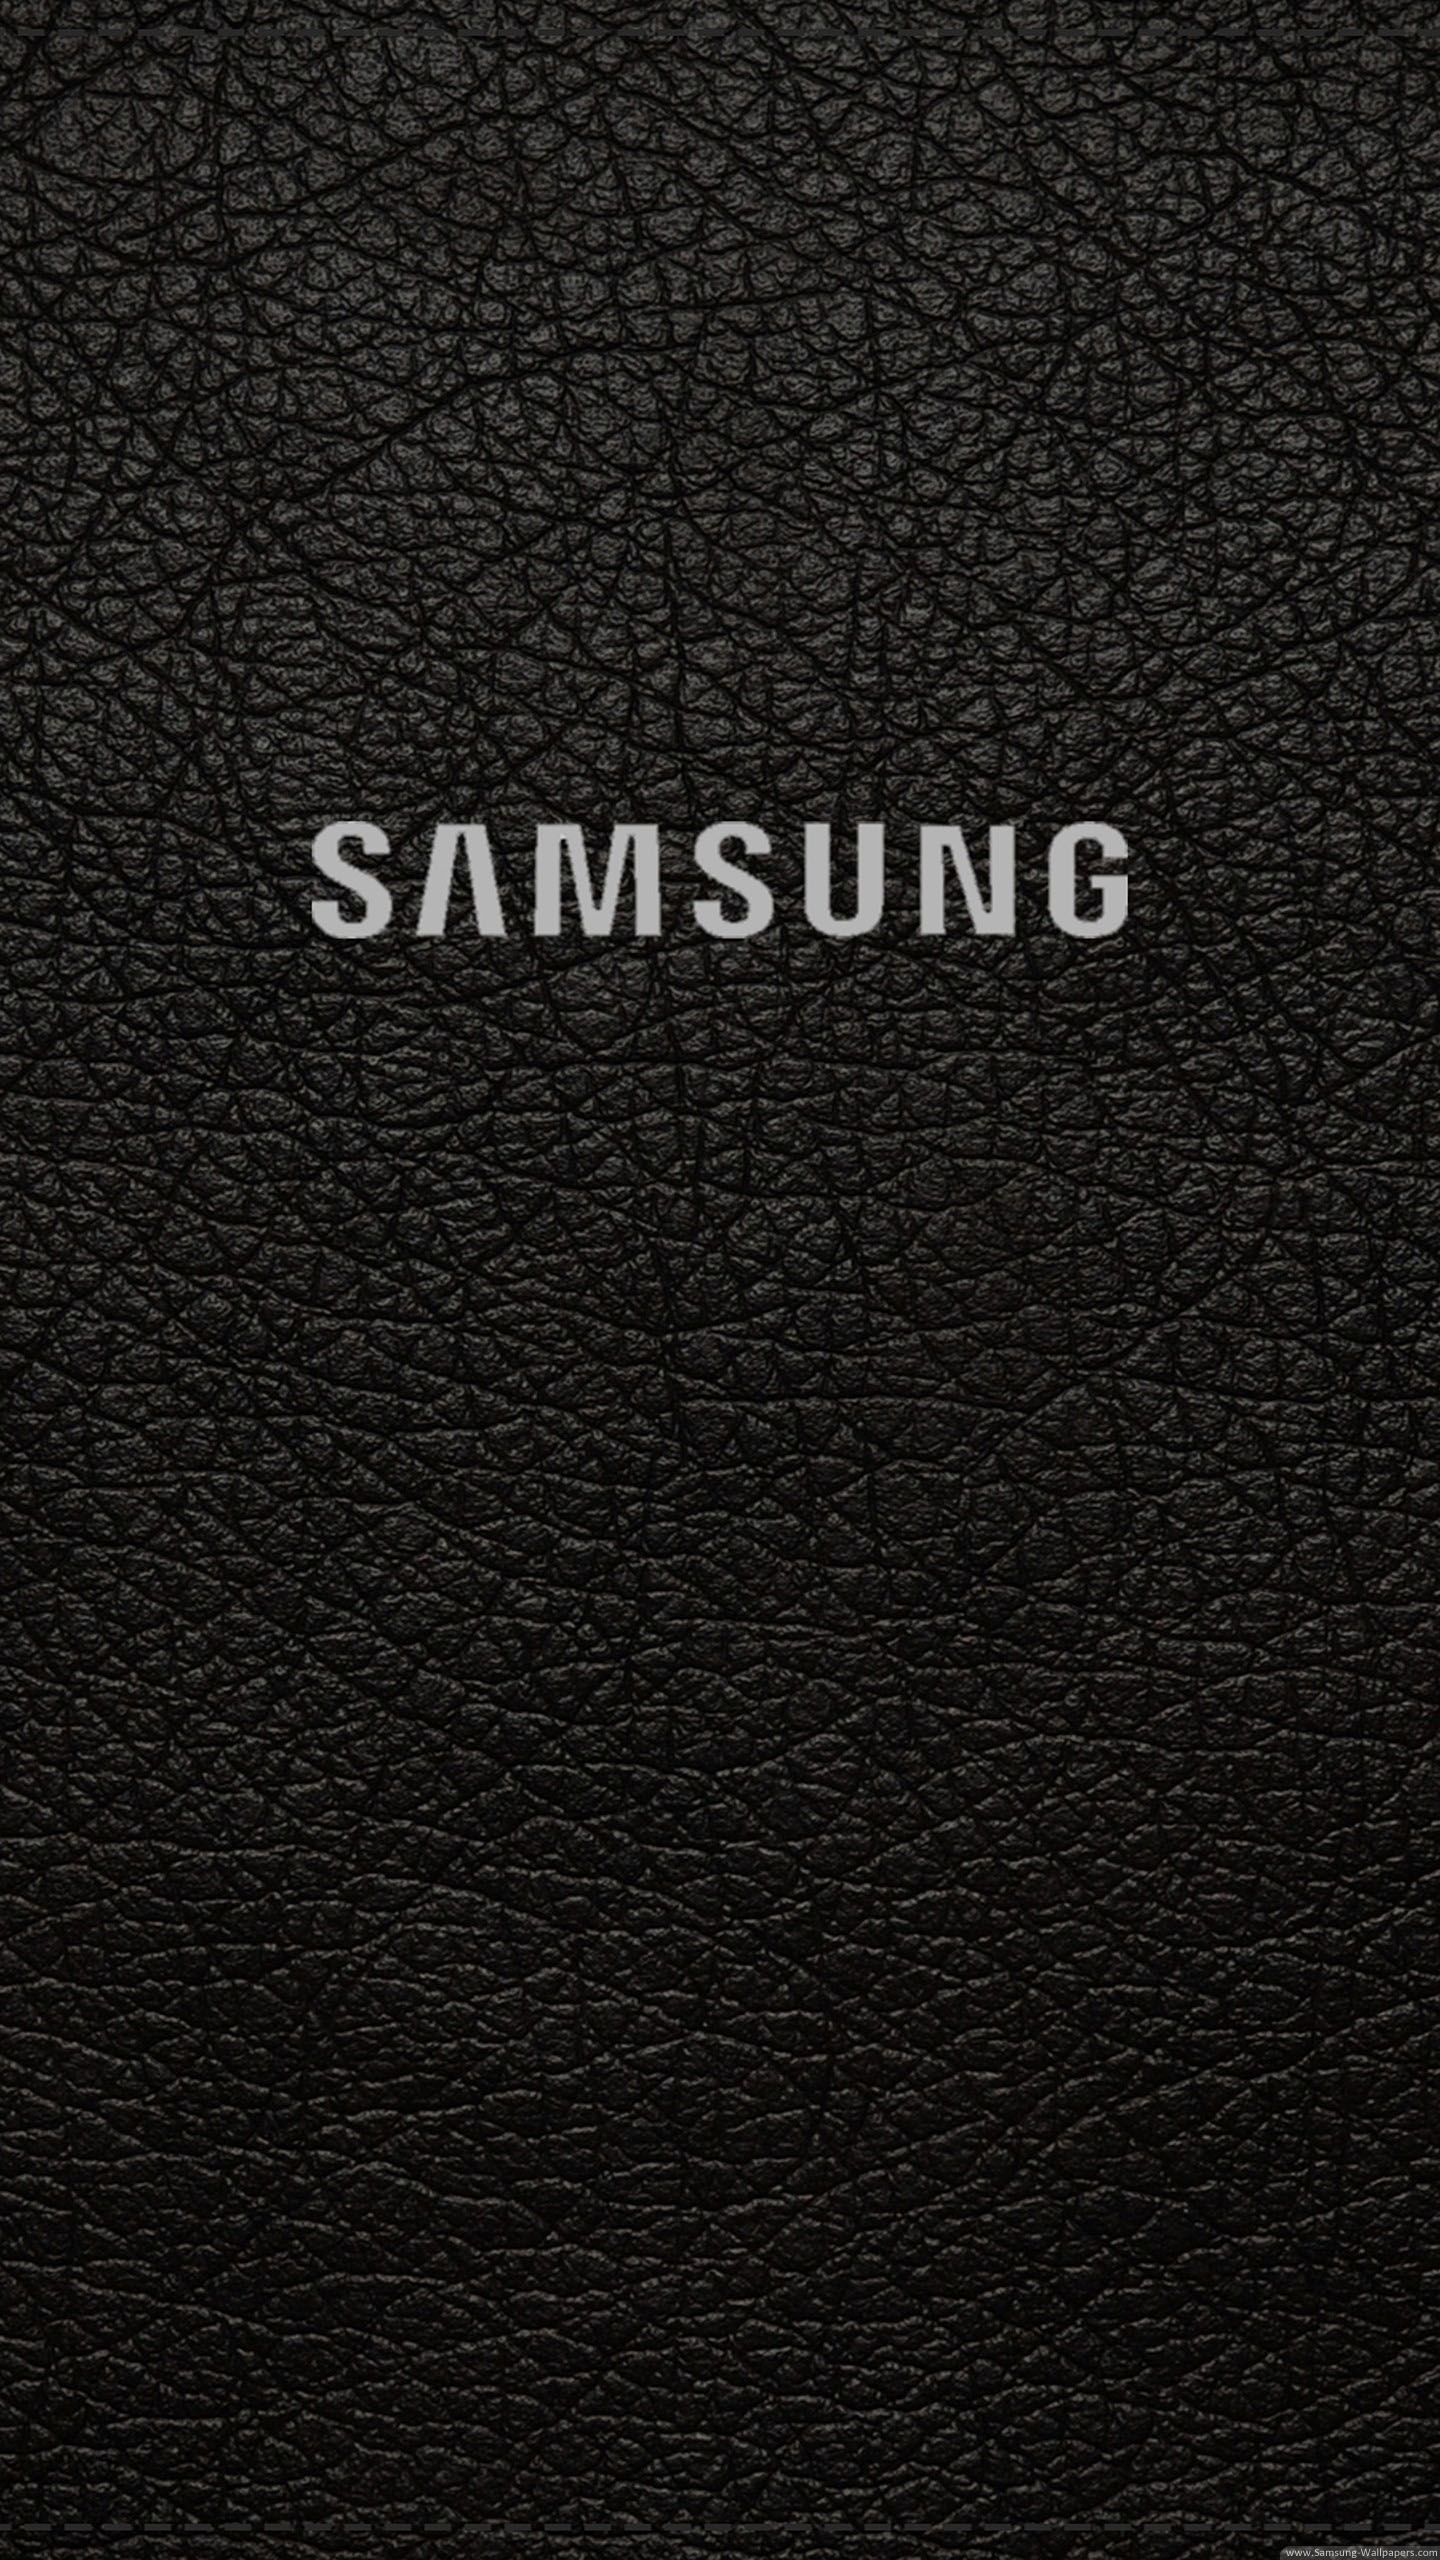 1440x2560 HD Samsung Wallpapers For Mobile Free Download